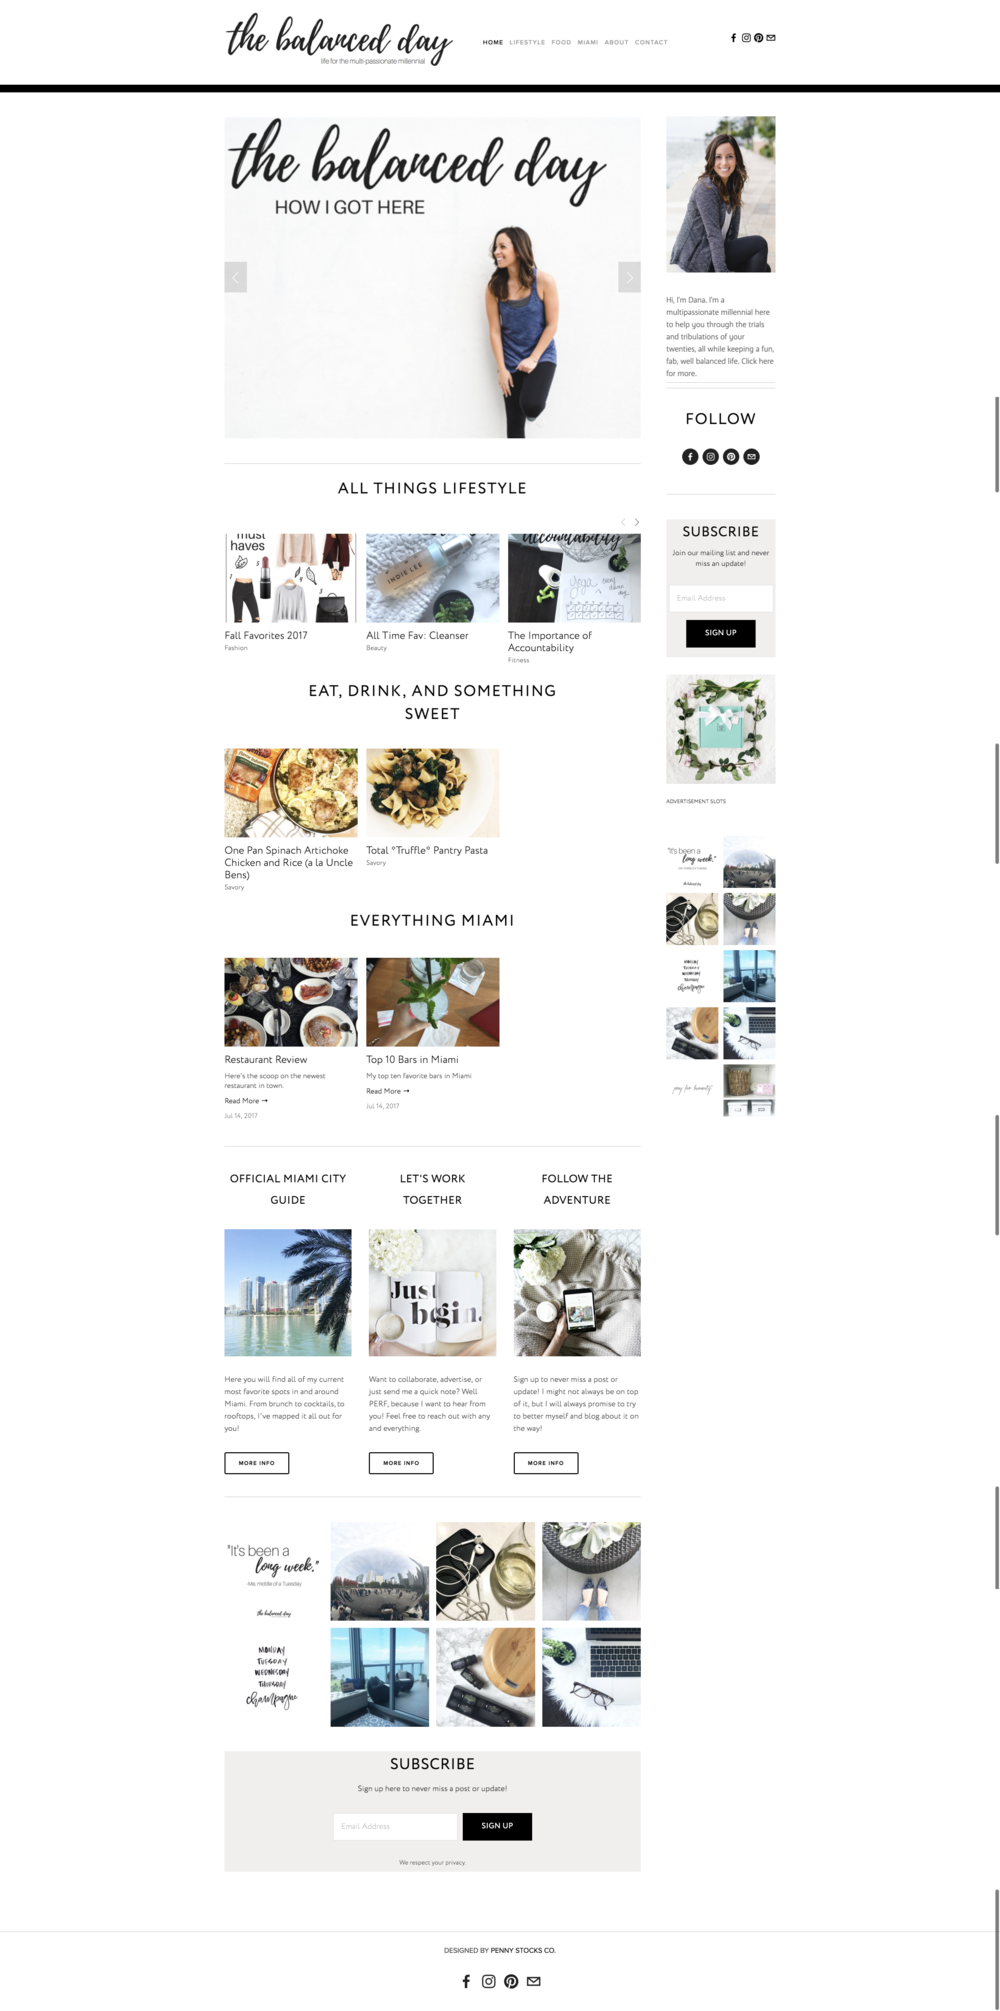 kristen-fulchi-design-studio-custom-squarespace-blog-website-the-balanced-day-custom-web-design-for-creatives.png